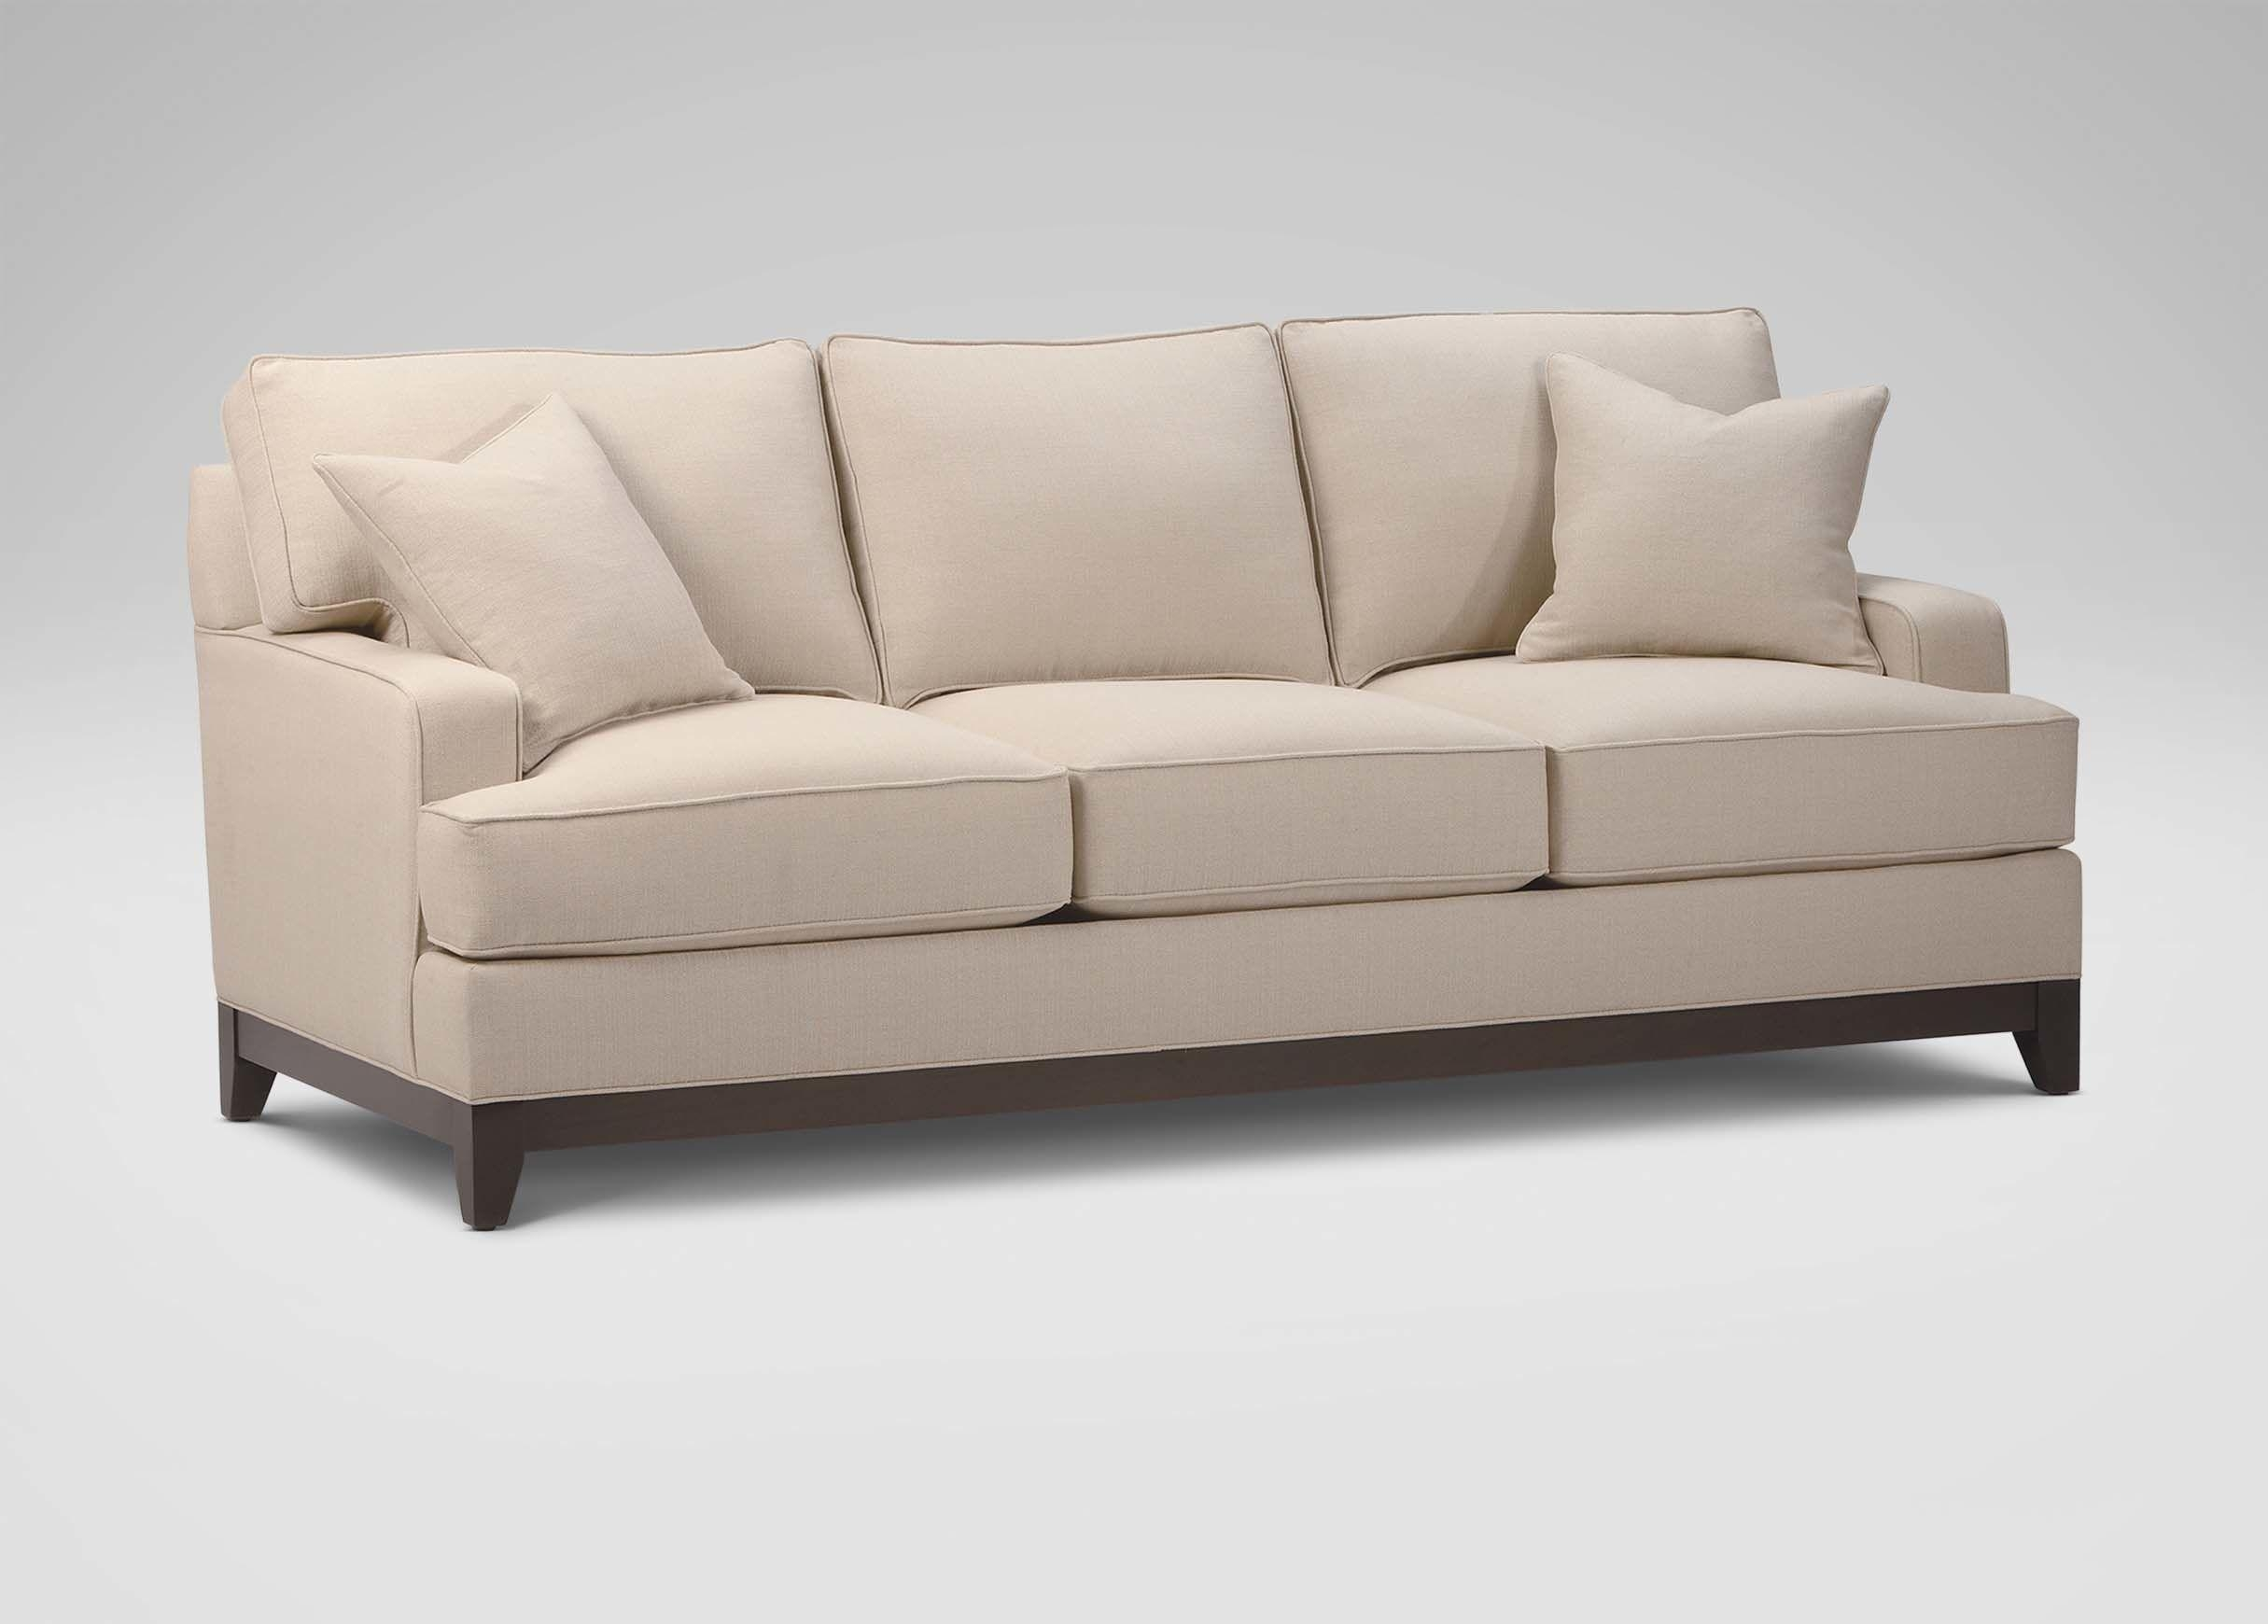 Storage Made Usa Ethan Allen Chesterfield Sofa Ethan Allen Sofa Intended For Ethan Allen Chesterfield Sofas (Image 17 of 20)